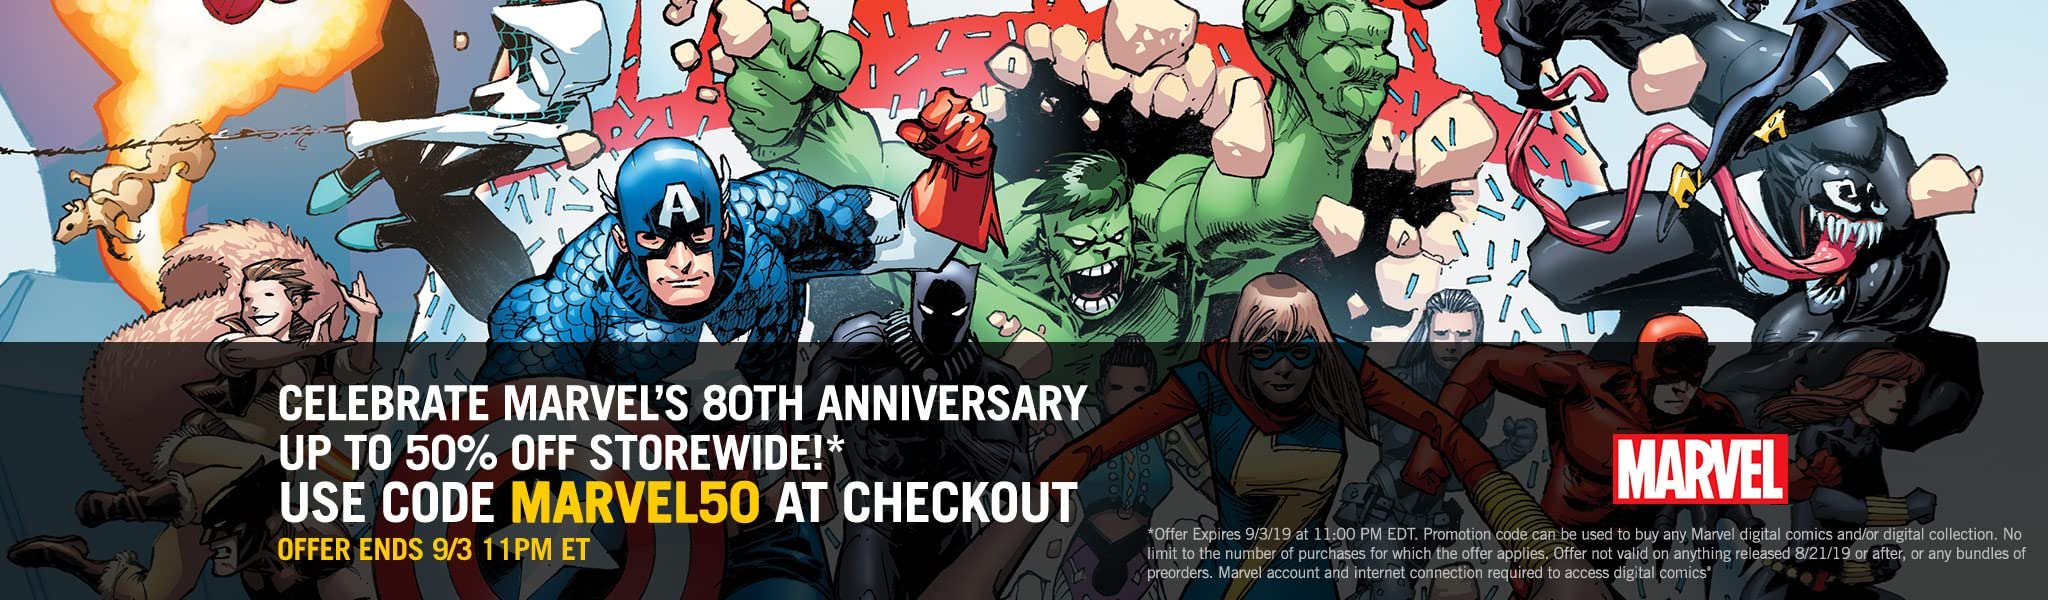 Marvel 50% Off Linewide Coupon - Comics by comiXology